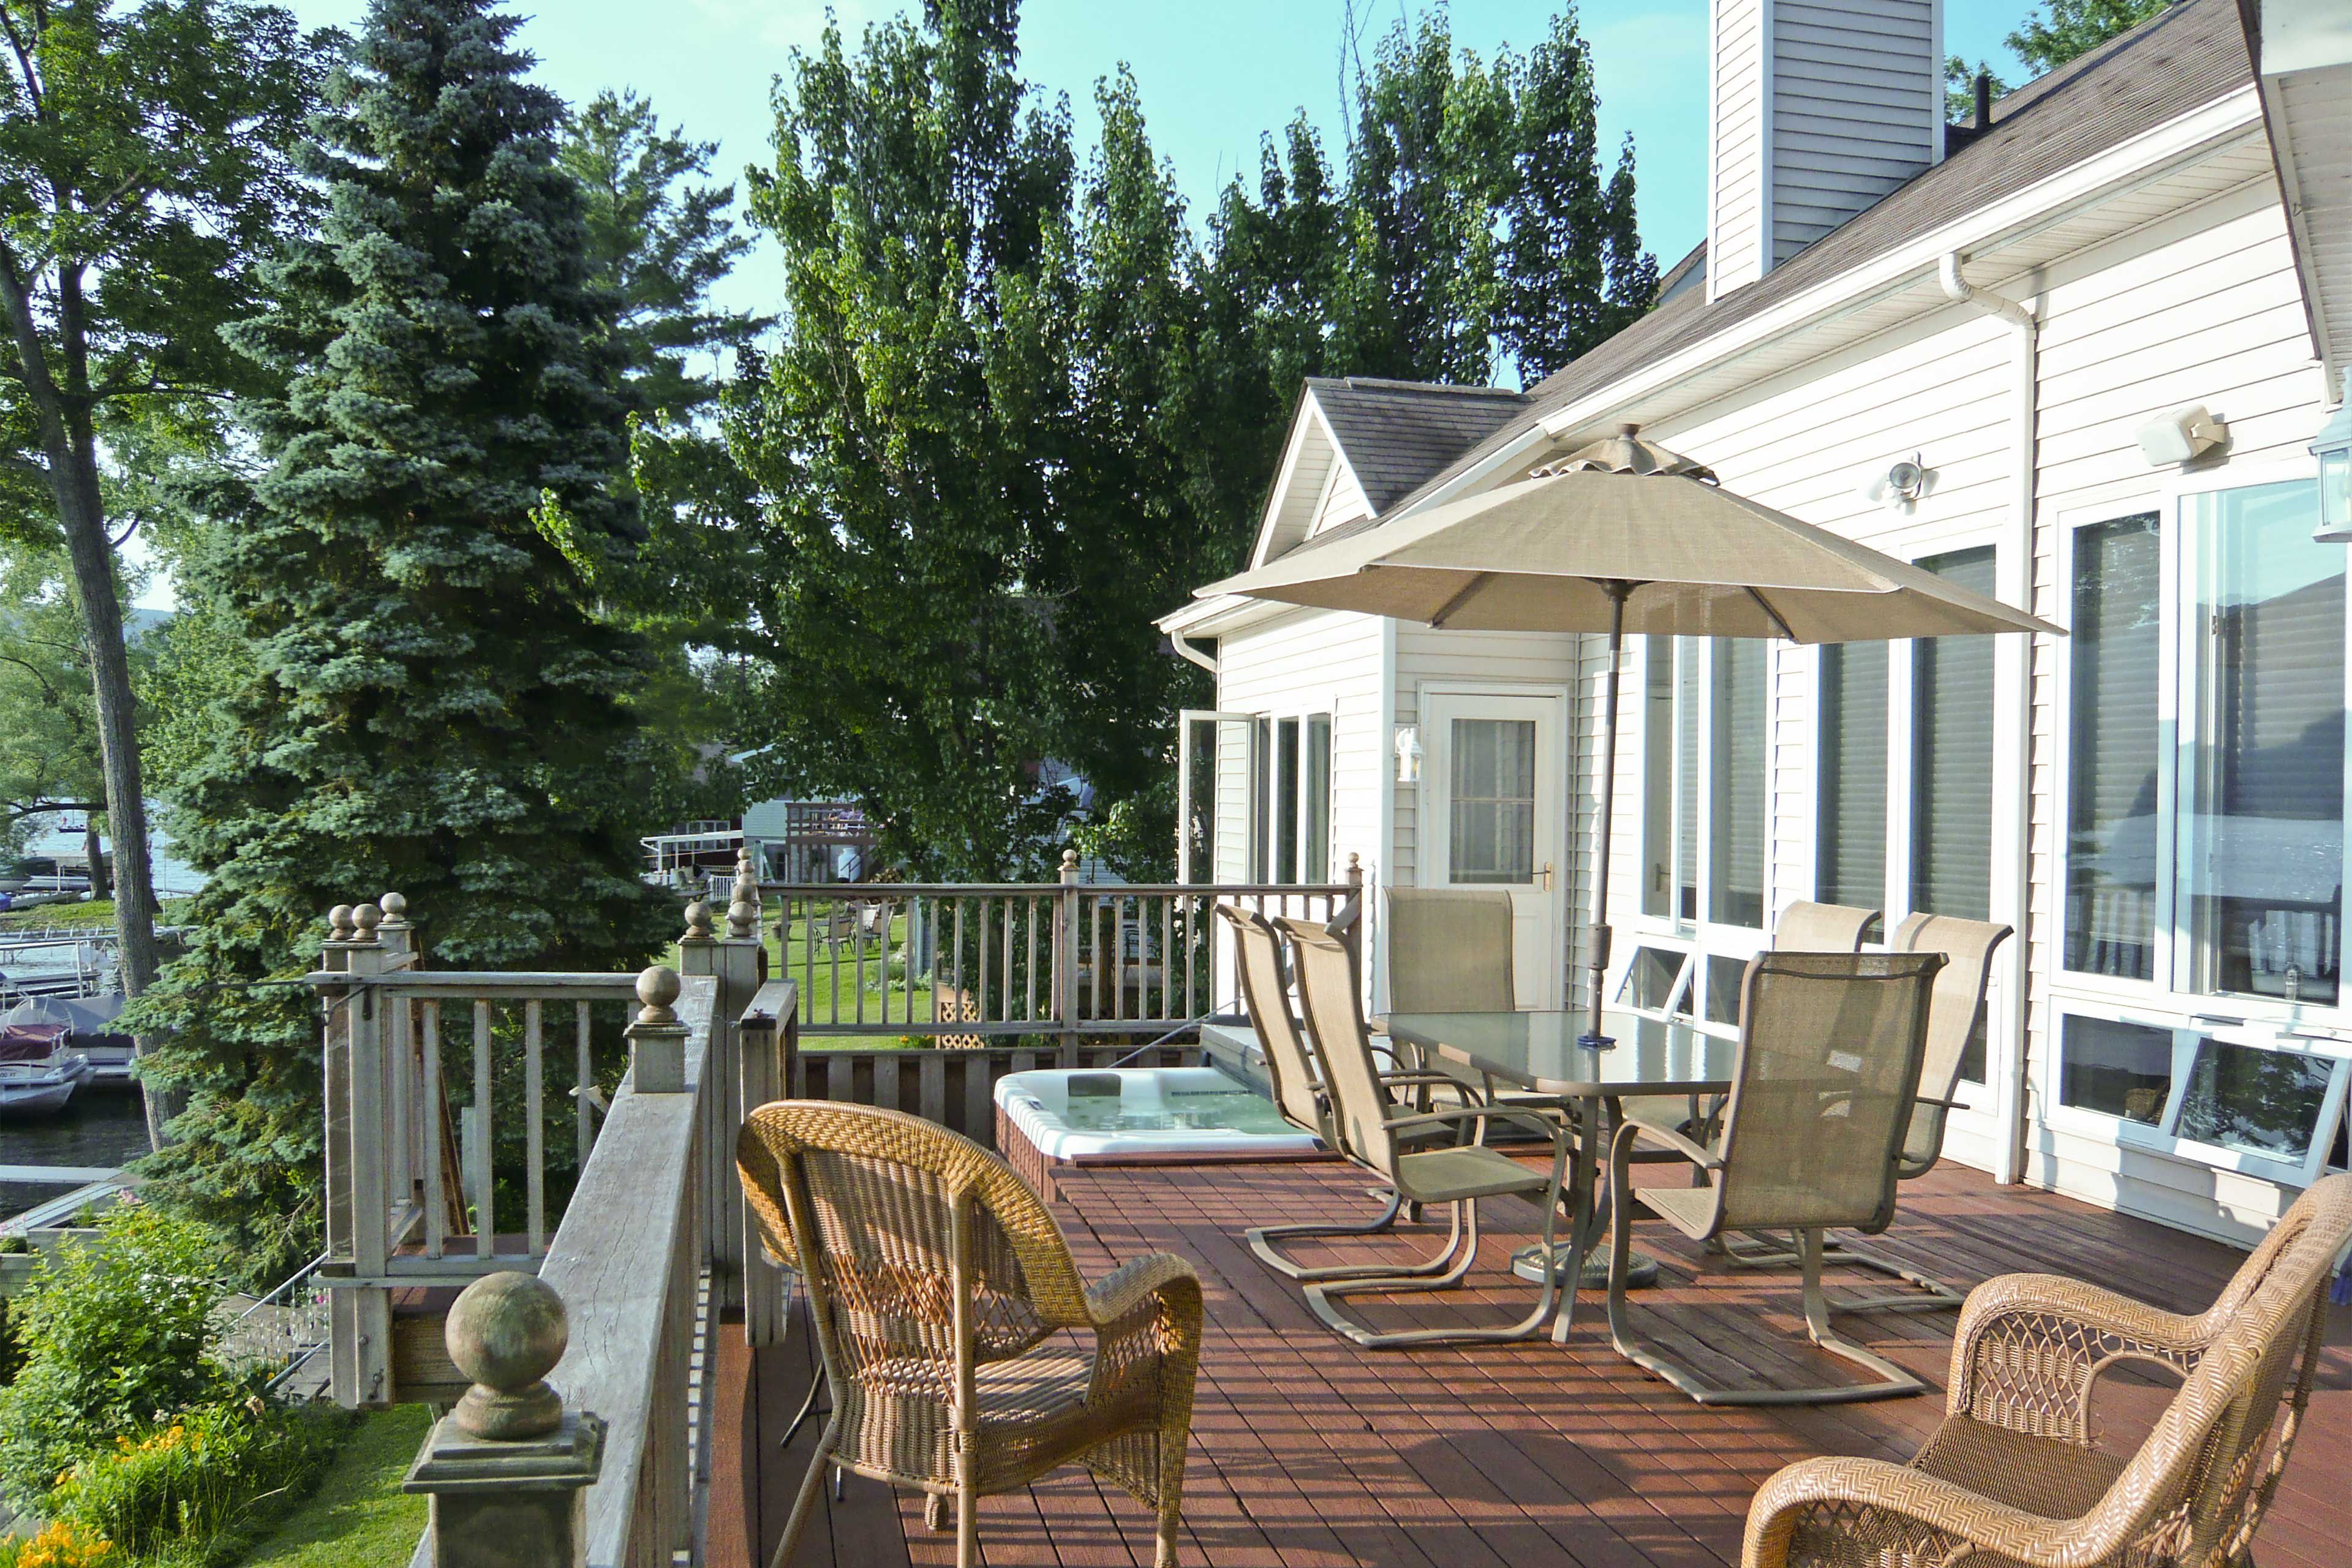 Enjoy the luxury of your private balcony, hot tub, dock, game room, and more!